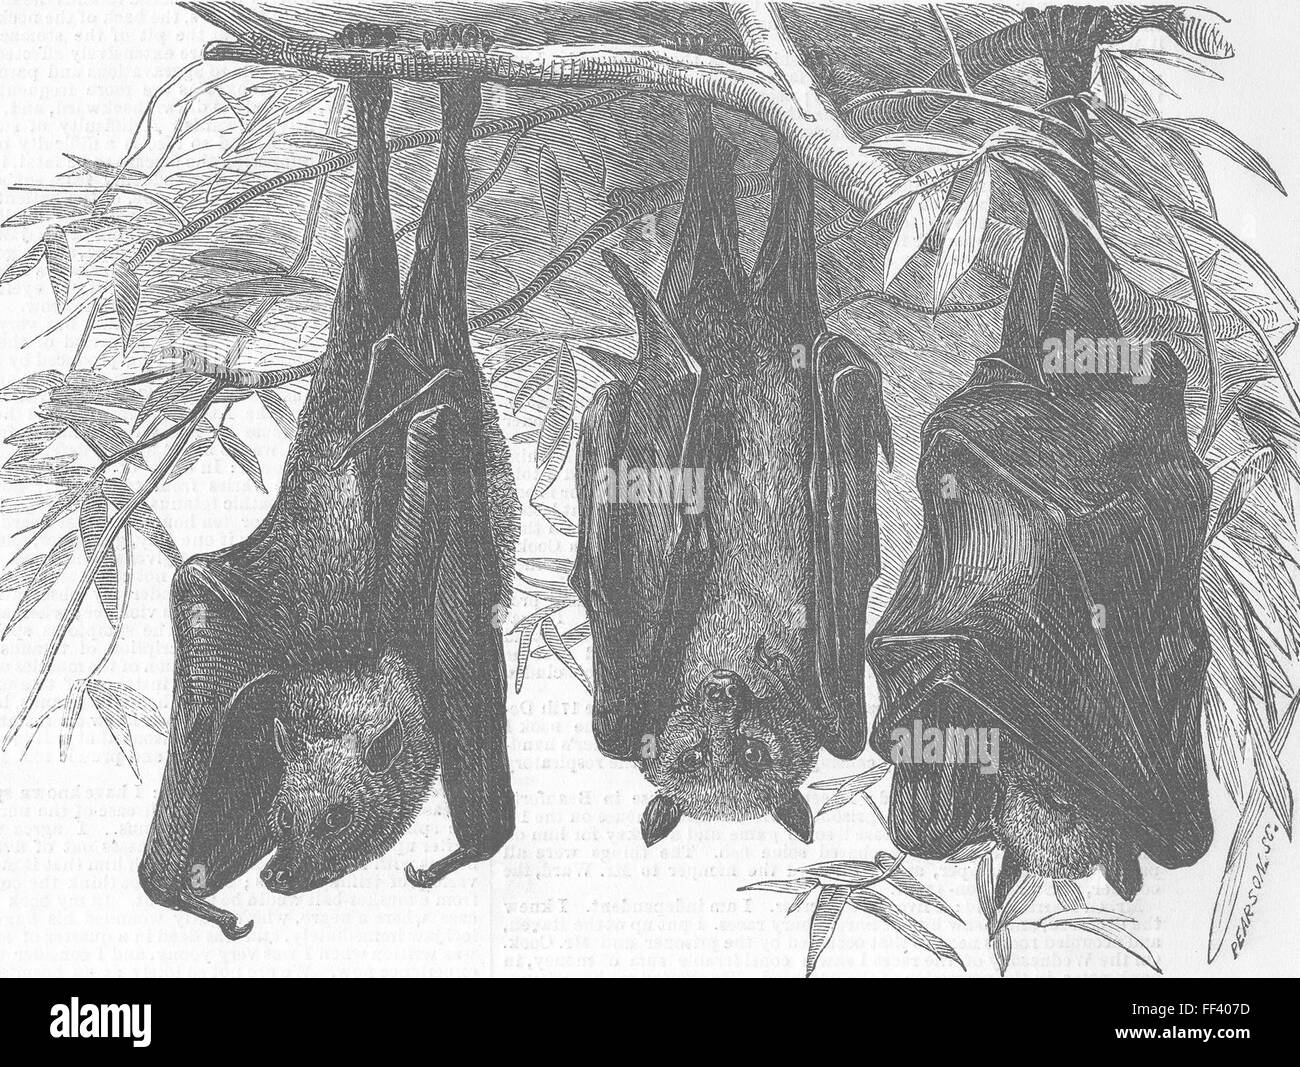 LONDON Zoo Flying foxes, Gdns of, Regent's Park 1856. Illustrated London News Stock Photo